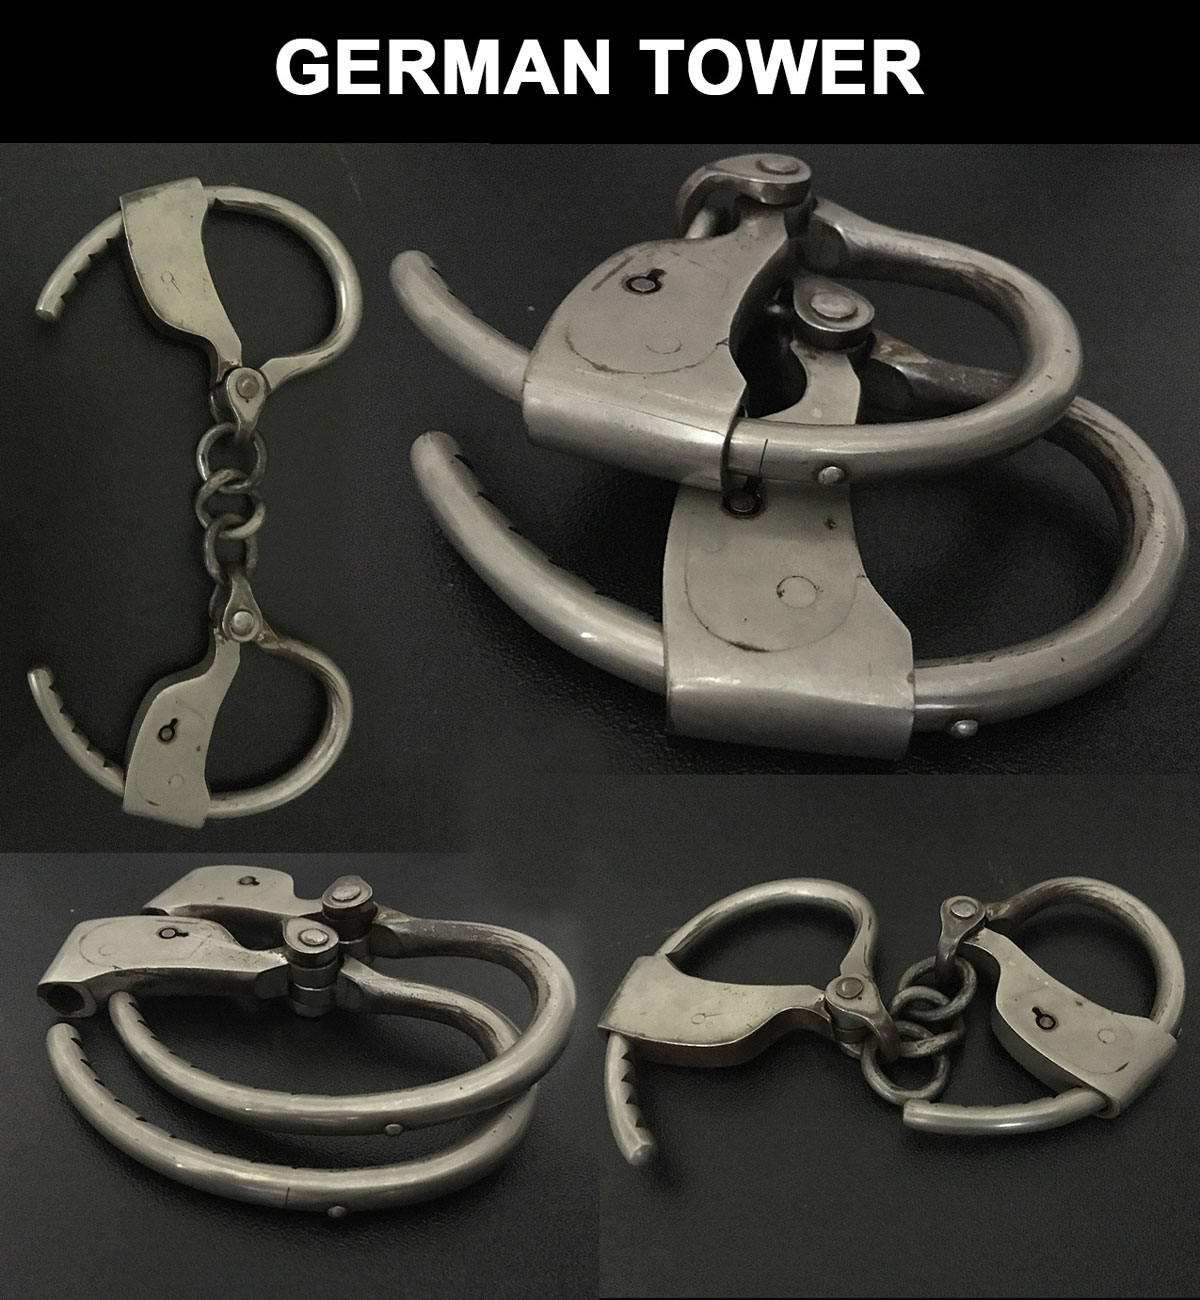 GERMAN-TOWER-QUAD.jpg